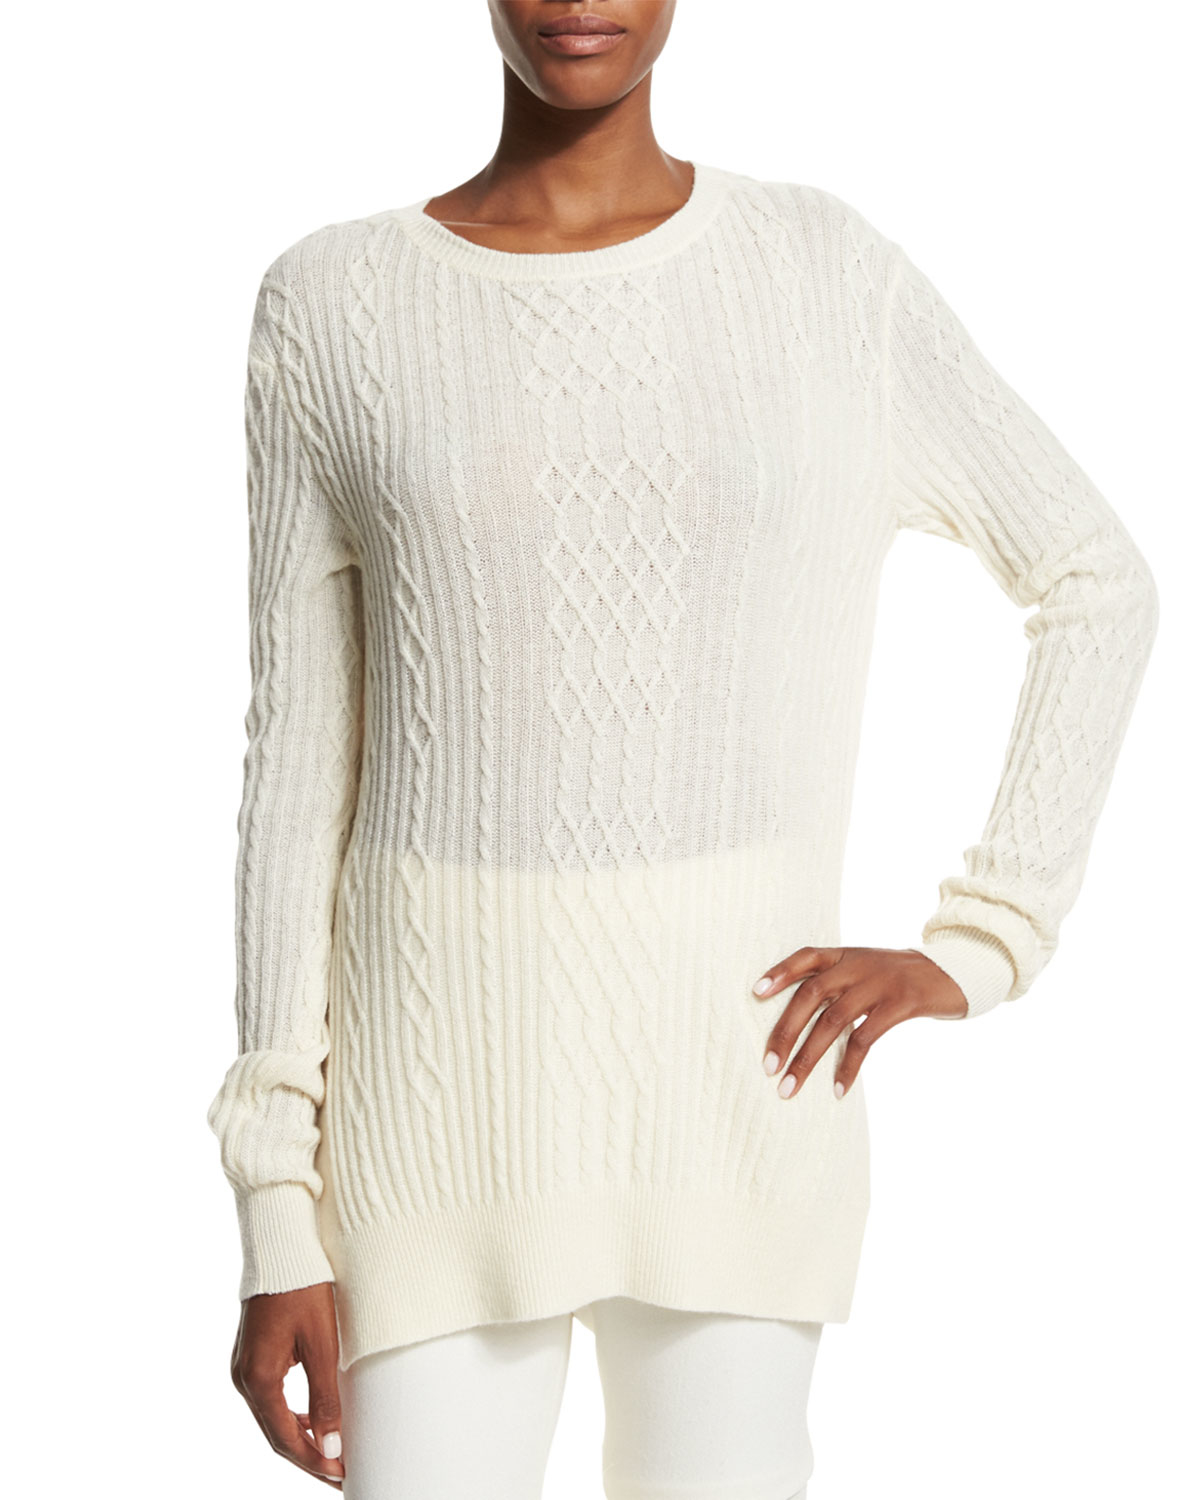 Ralph lauren collection Open-weave Cashmere Tunic Sweater in White ...